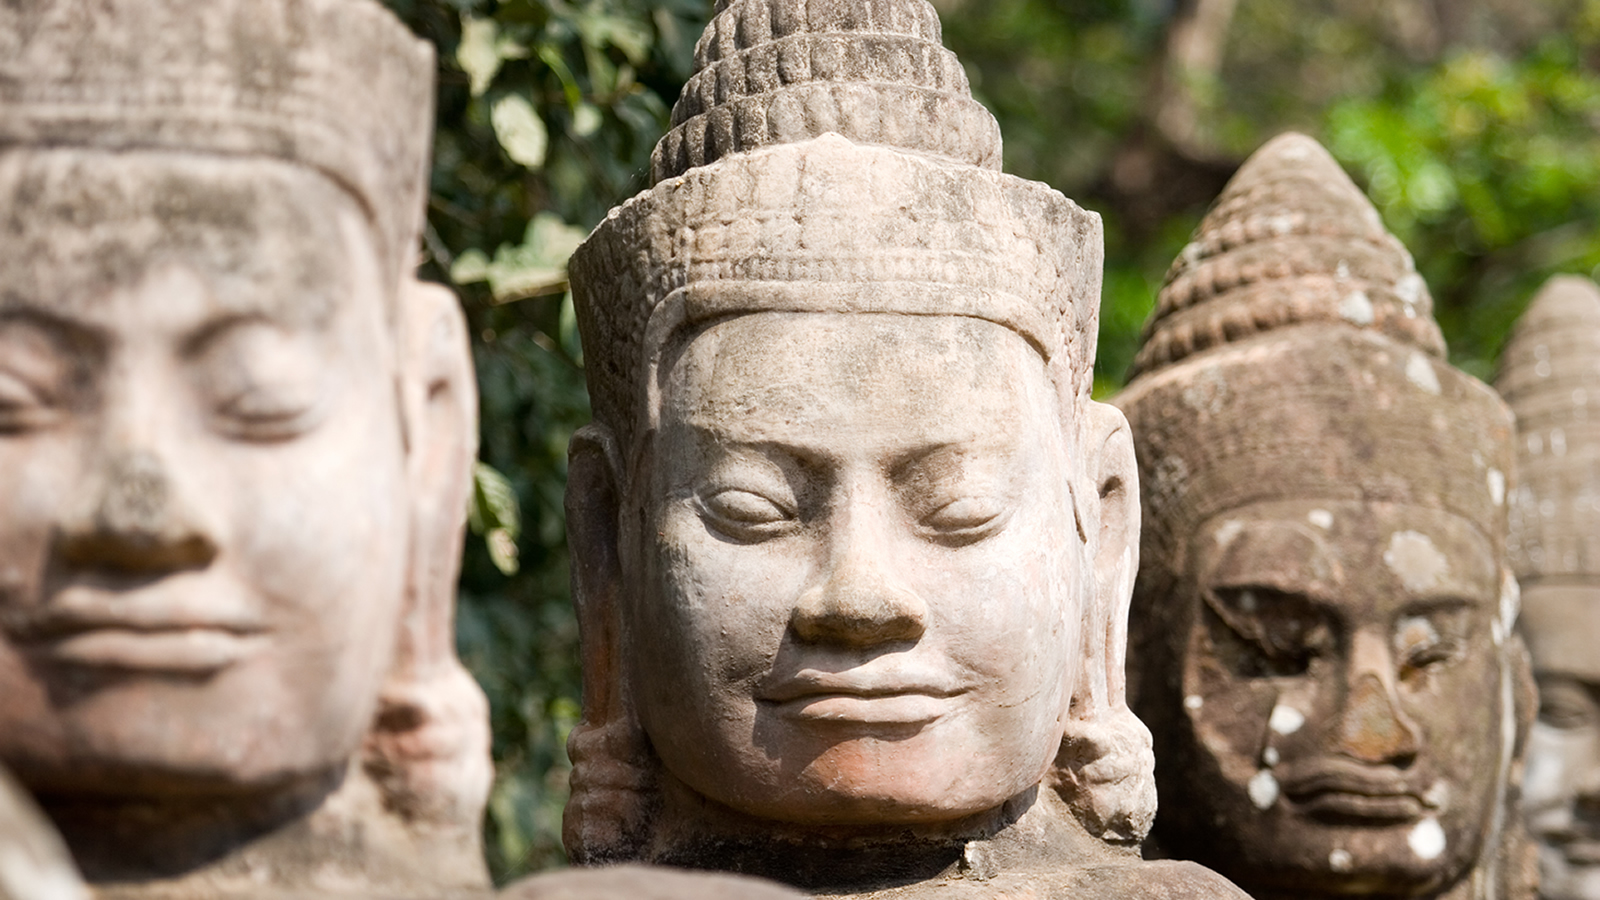 Row of Asian Stone Statue Heads